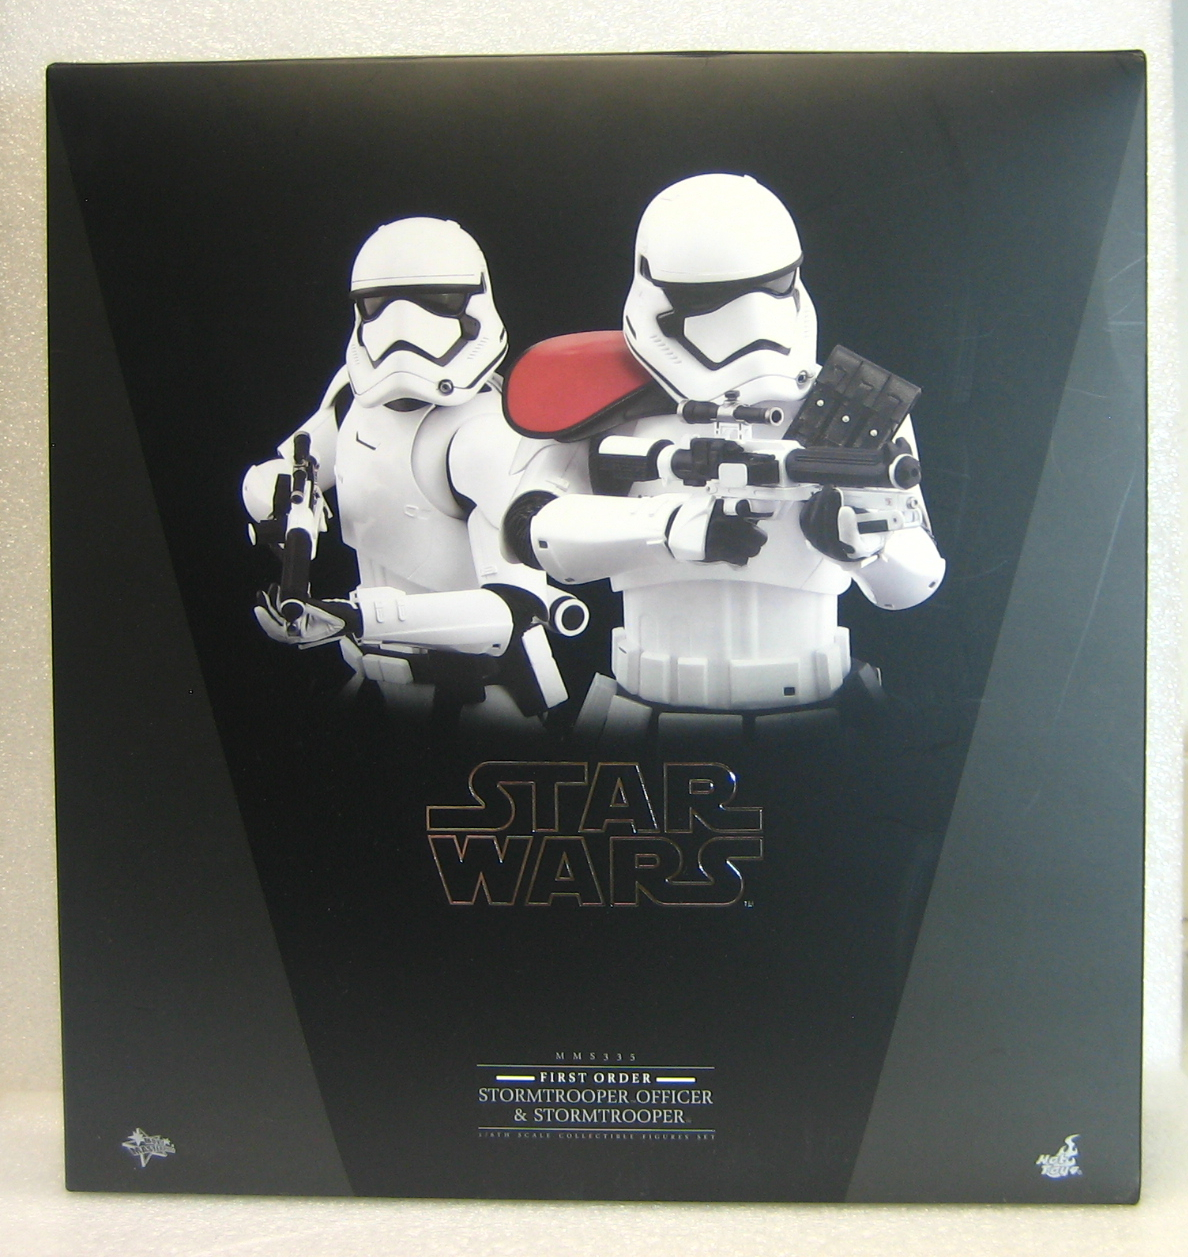 Hot Toys Star Wars First Order Stormtrooper Officer & Stormtrooper 1:6 Scale Figure Set